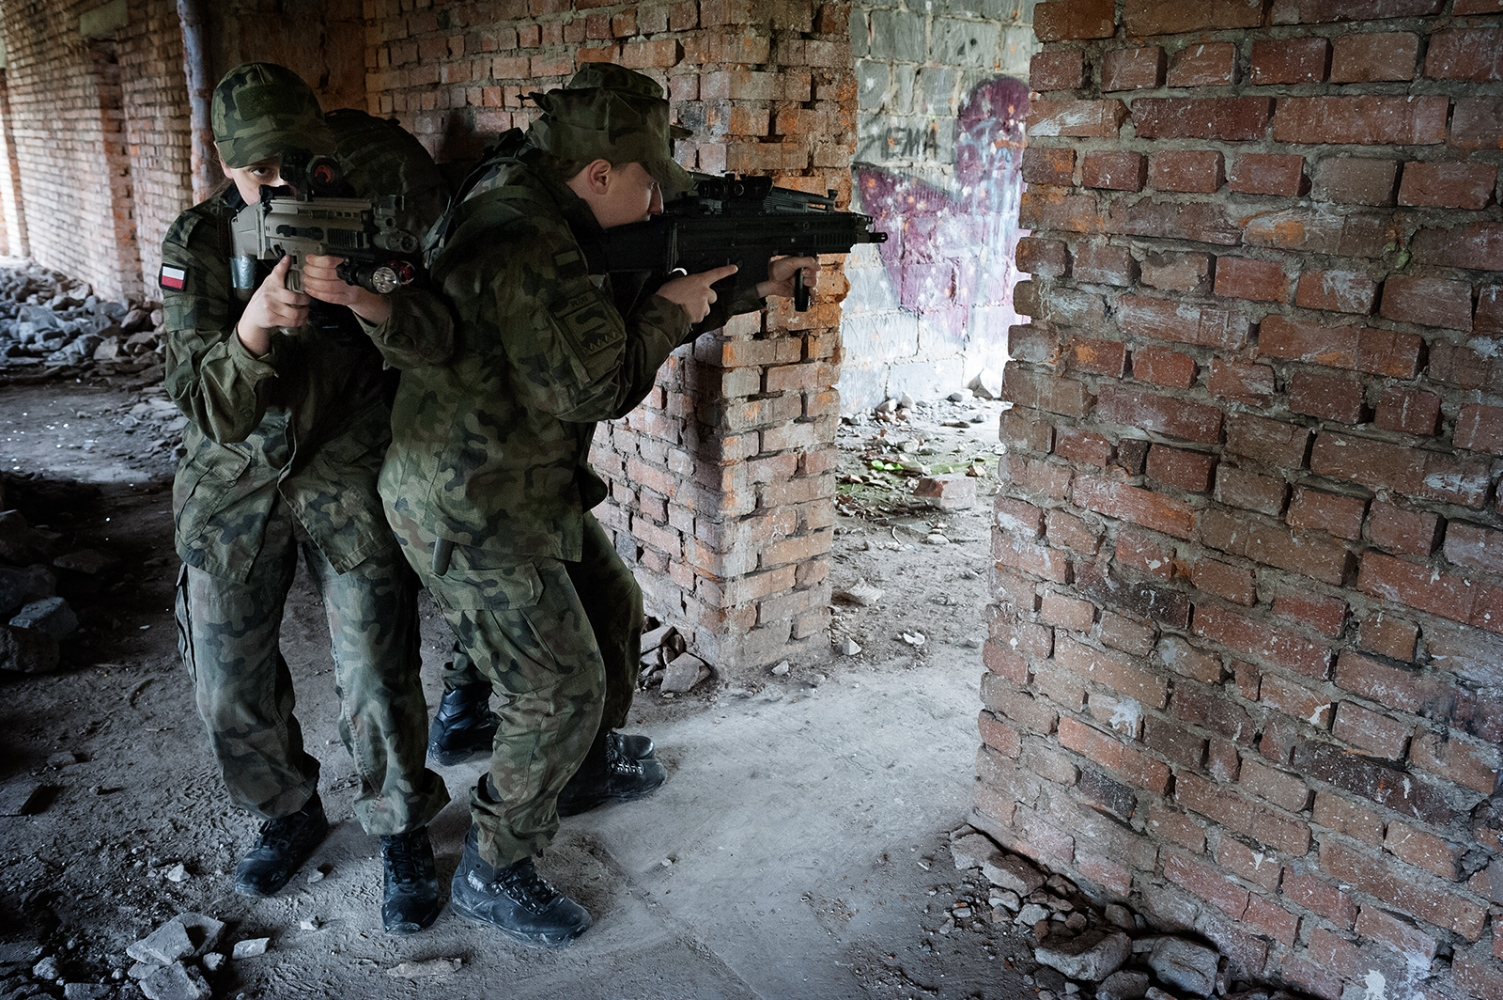 Students (16-19 years old) from the public school in B. learn combat tactics in urban areas under the supervision of a paramilitary organization. The paramilitaries freely decide the type of activities they carry out with the students: from first aid, topography, physical education and military training to survival camps and combat tactics.